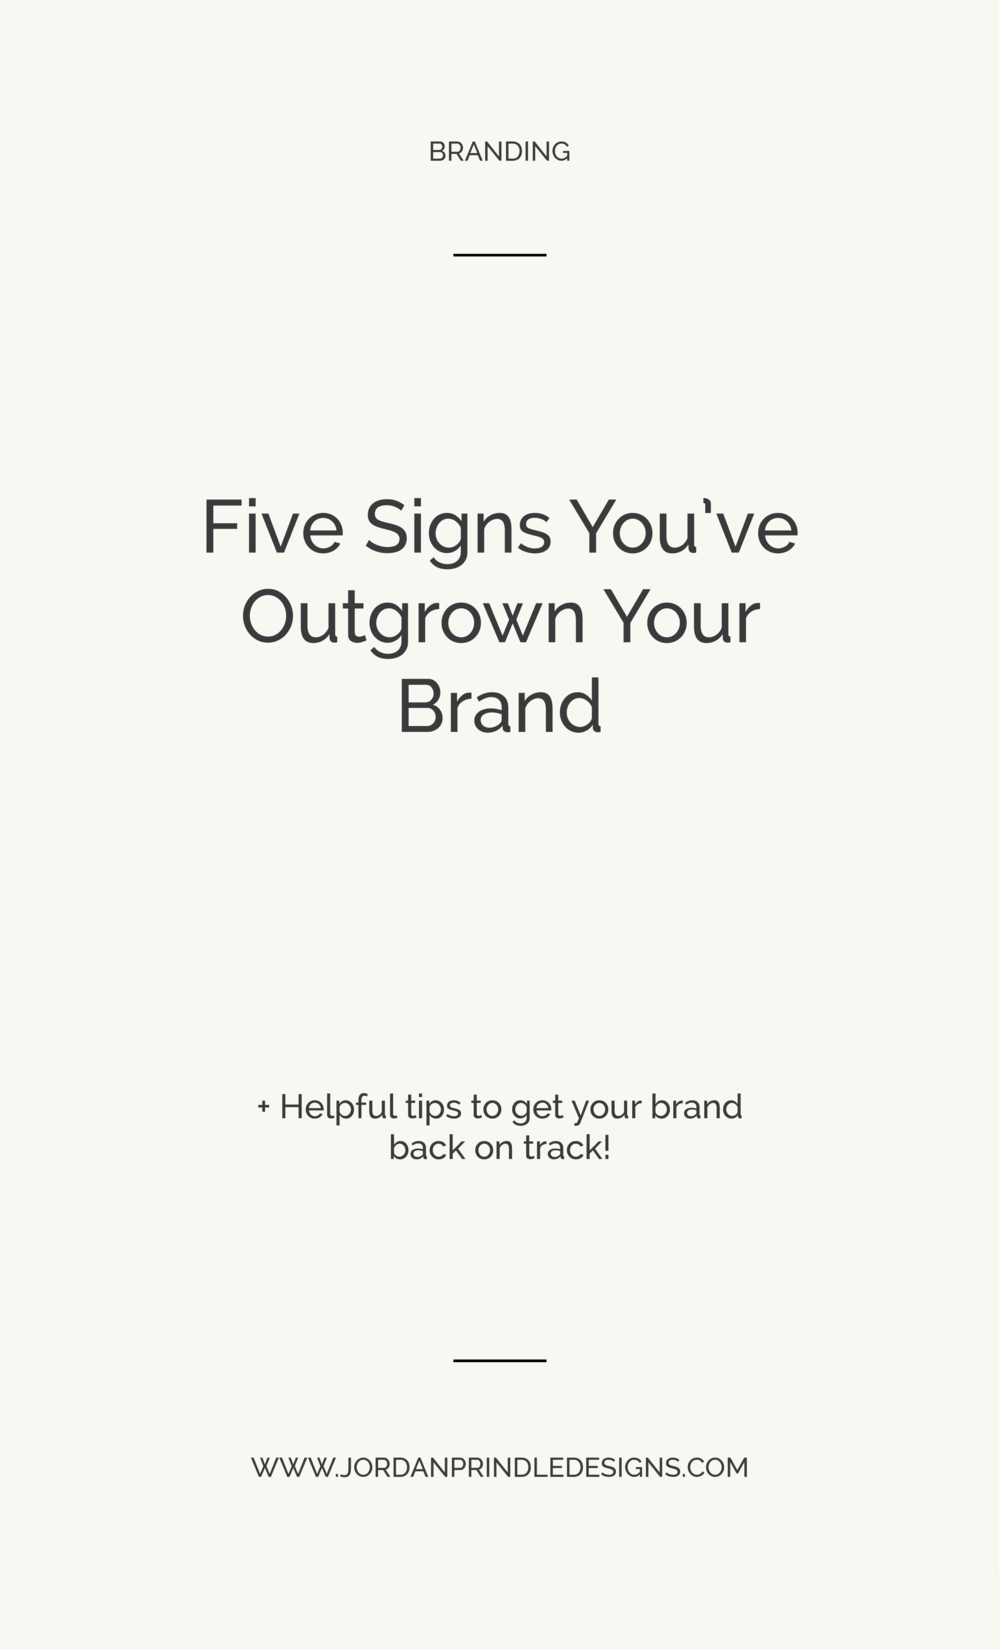 5 Signs You've Outgrown Your Brand | Branding for small business owners is crucial, but is your brand growing with your business? Find out at www.jordanprindledesigns.com #branding #branddesign #smallbusiness